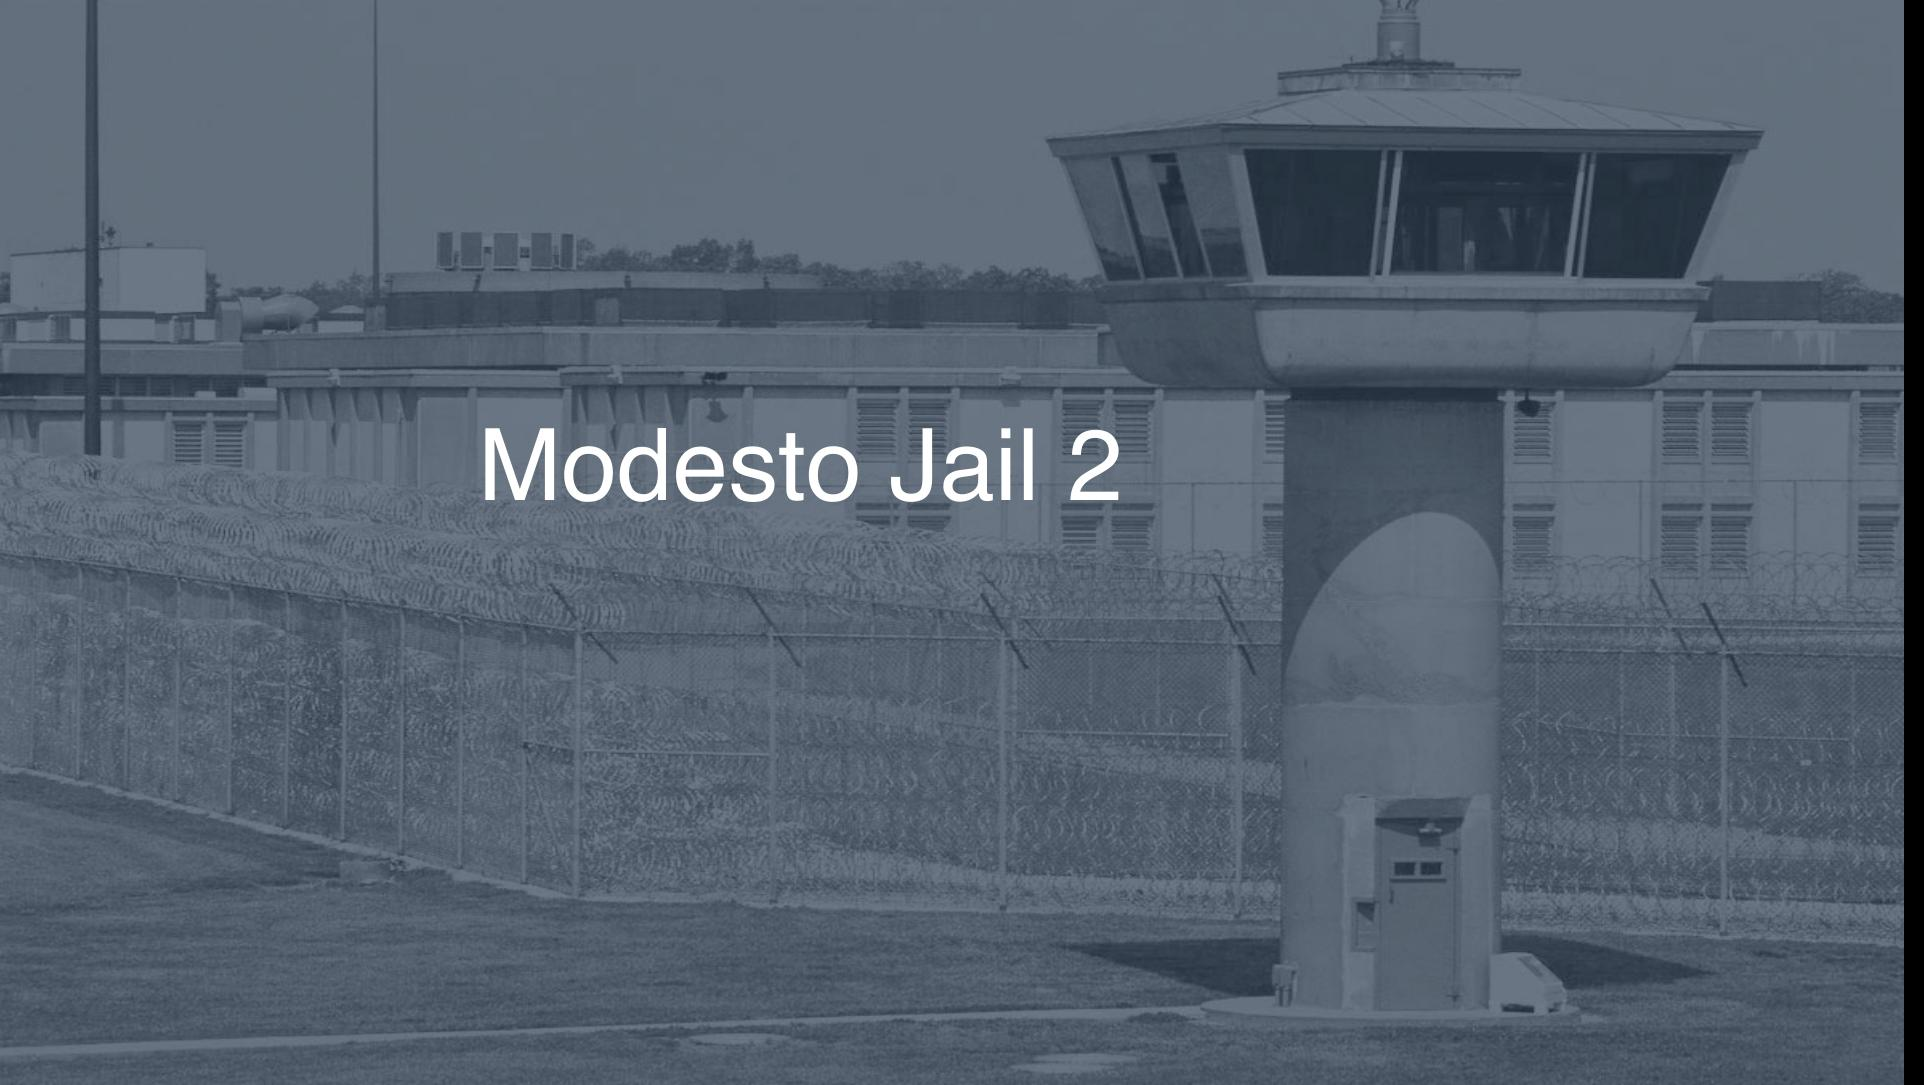 Modesto Jail Inmate Search, Lookup & Services - Pigeonly